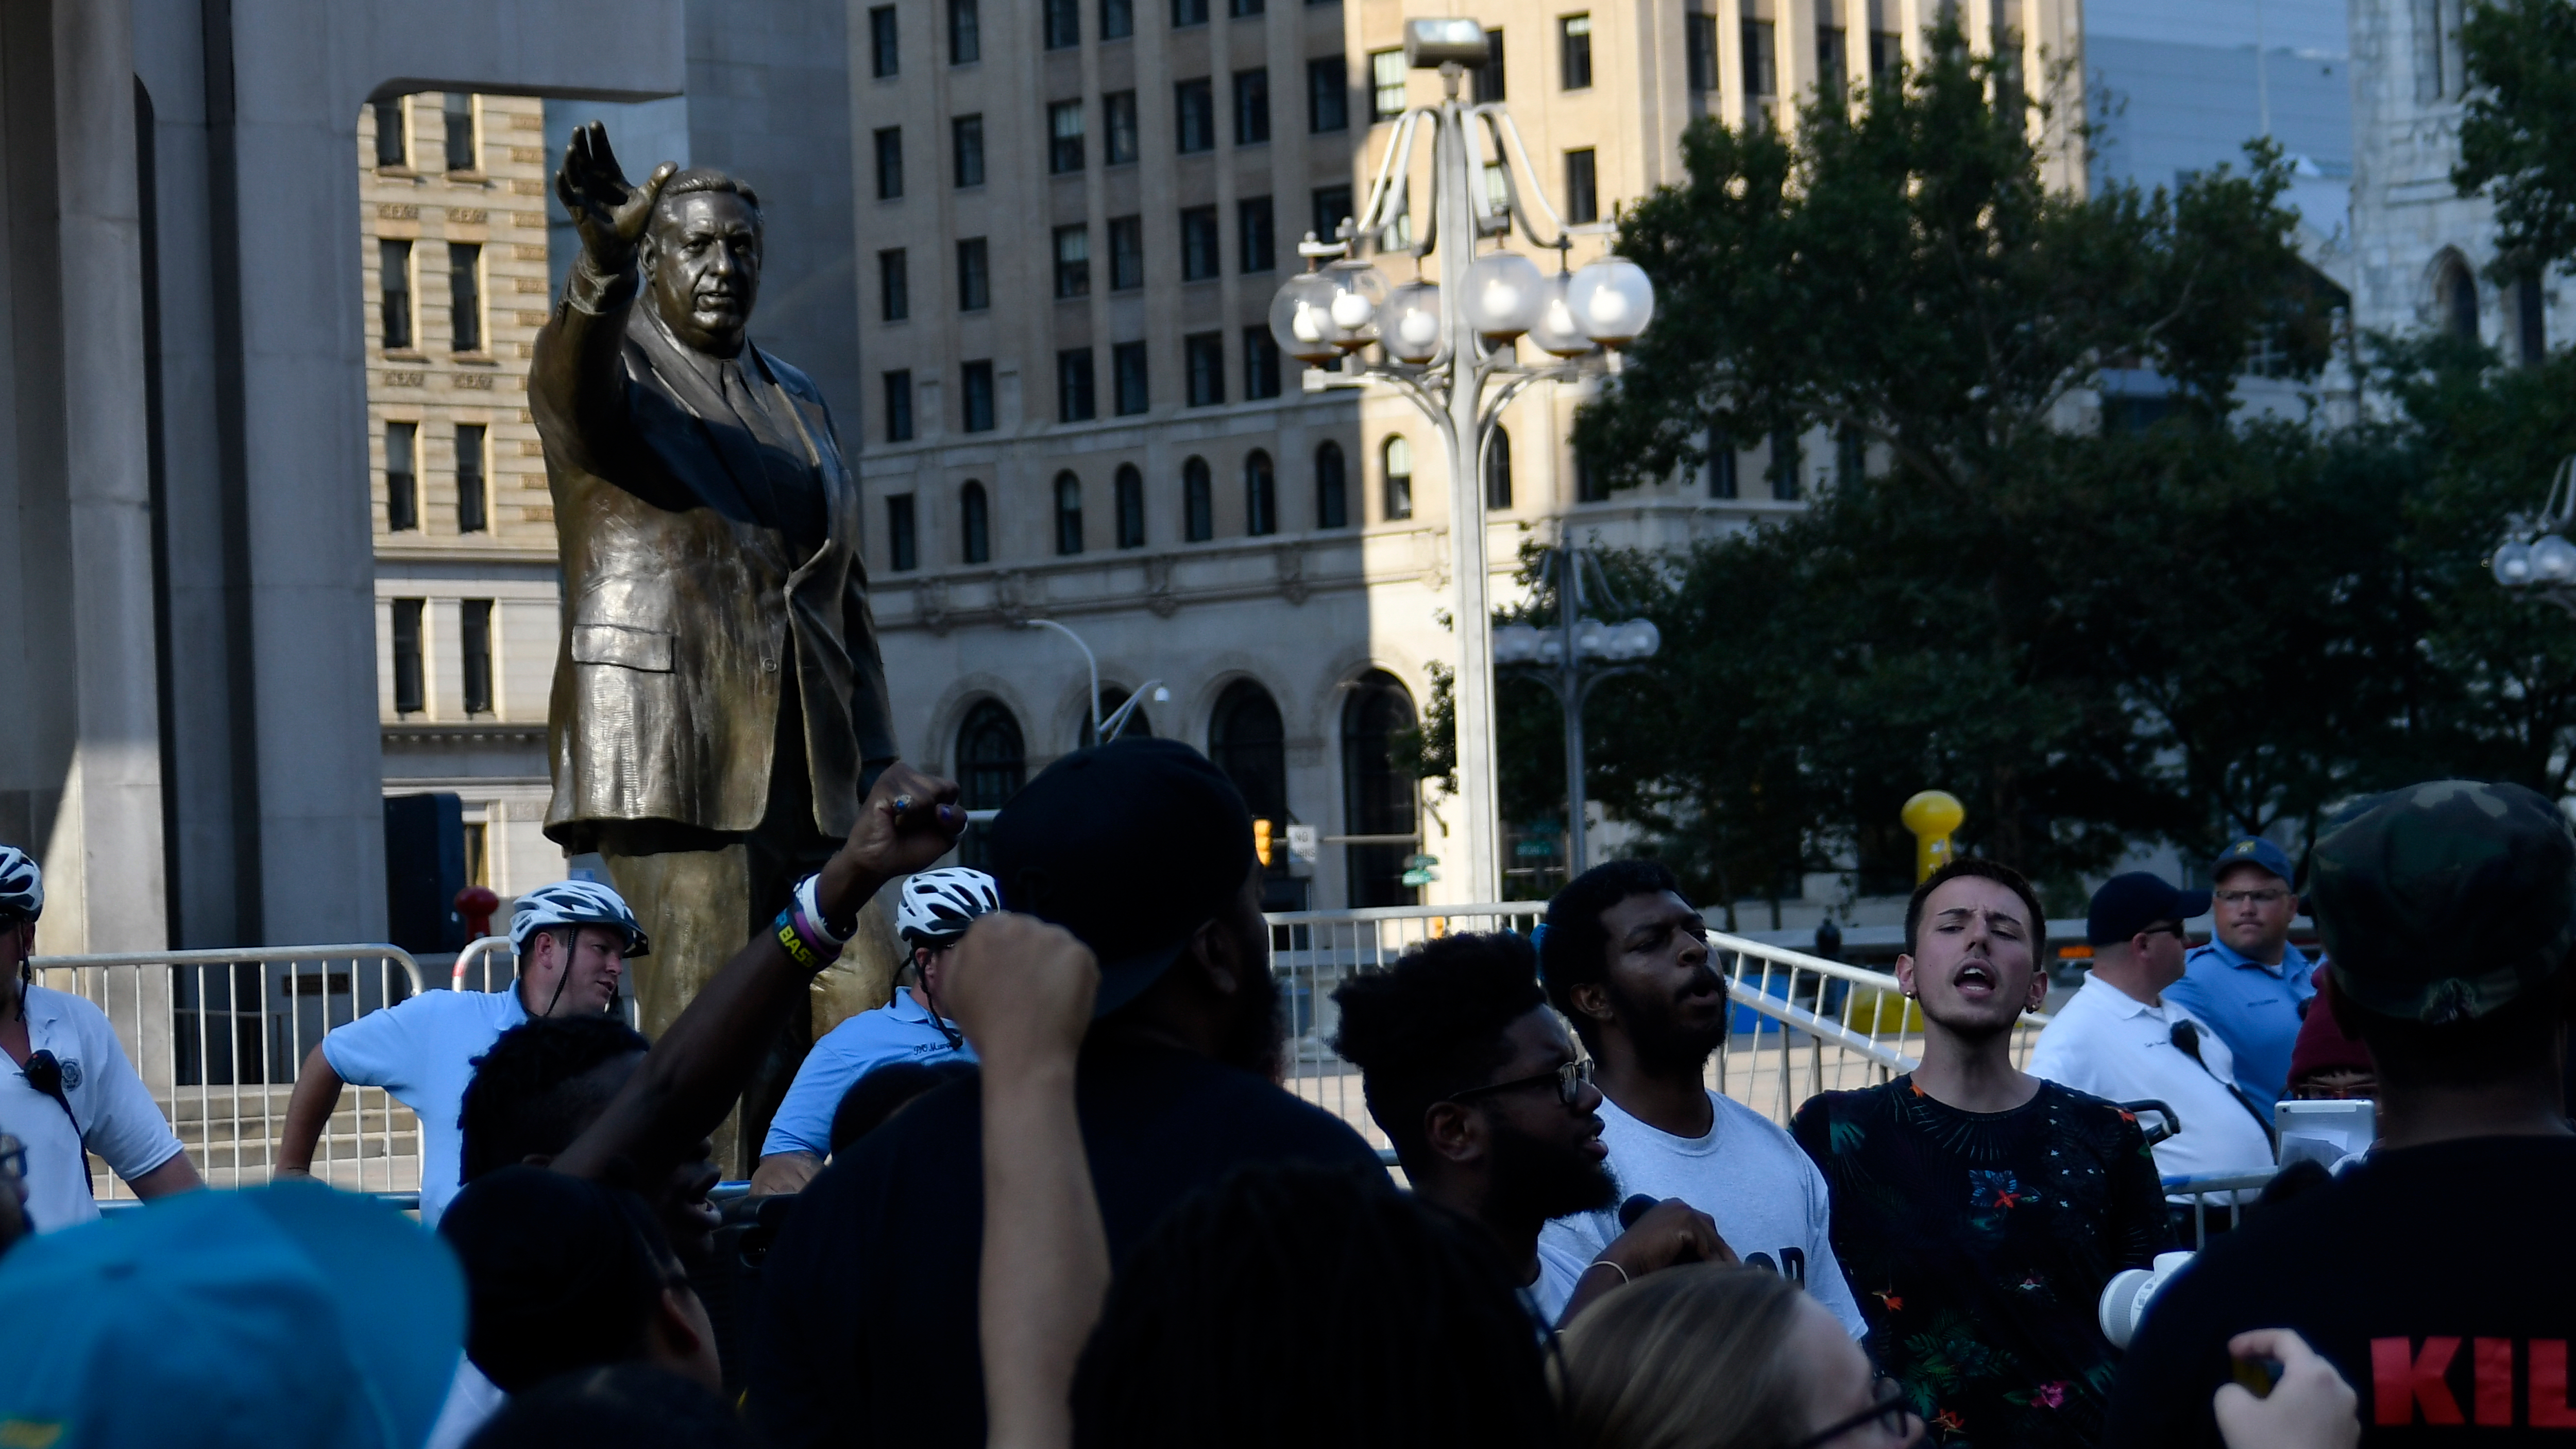 Protestors demand the removal of the Frank Rizzo statue, at a rally near City Hall, in Philadelphia, PA, on August 21, 2017.